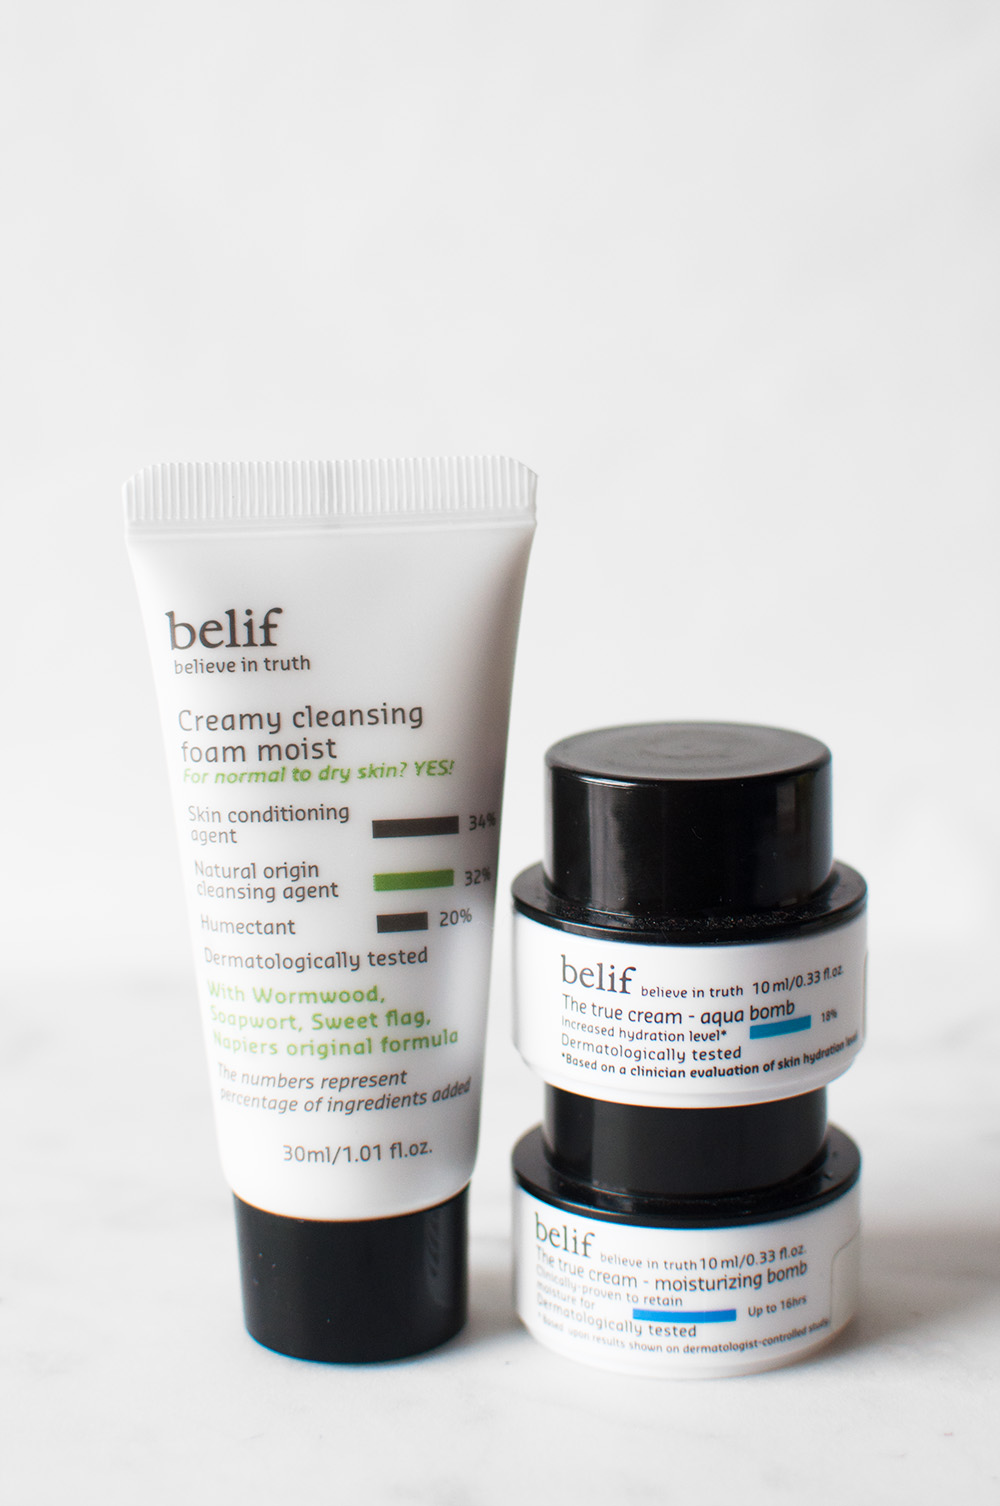 Belif US, Belif at Sephora, Belif haul, Belif US review